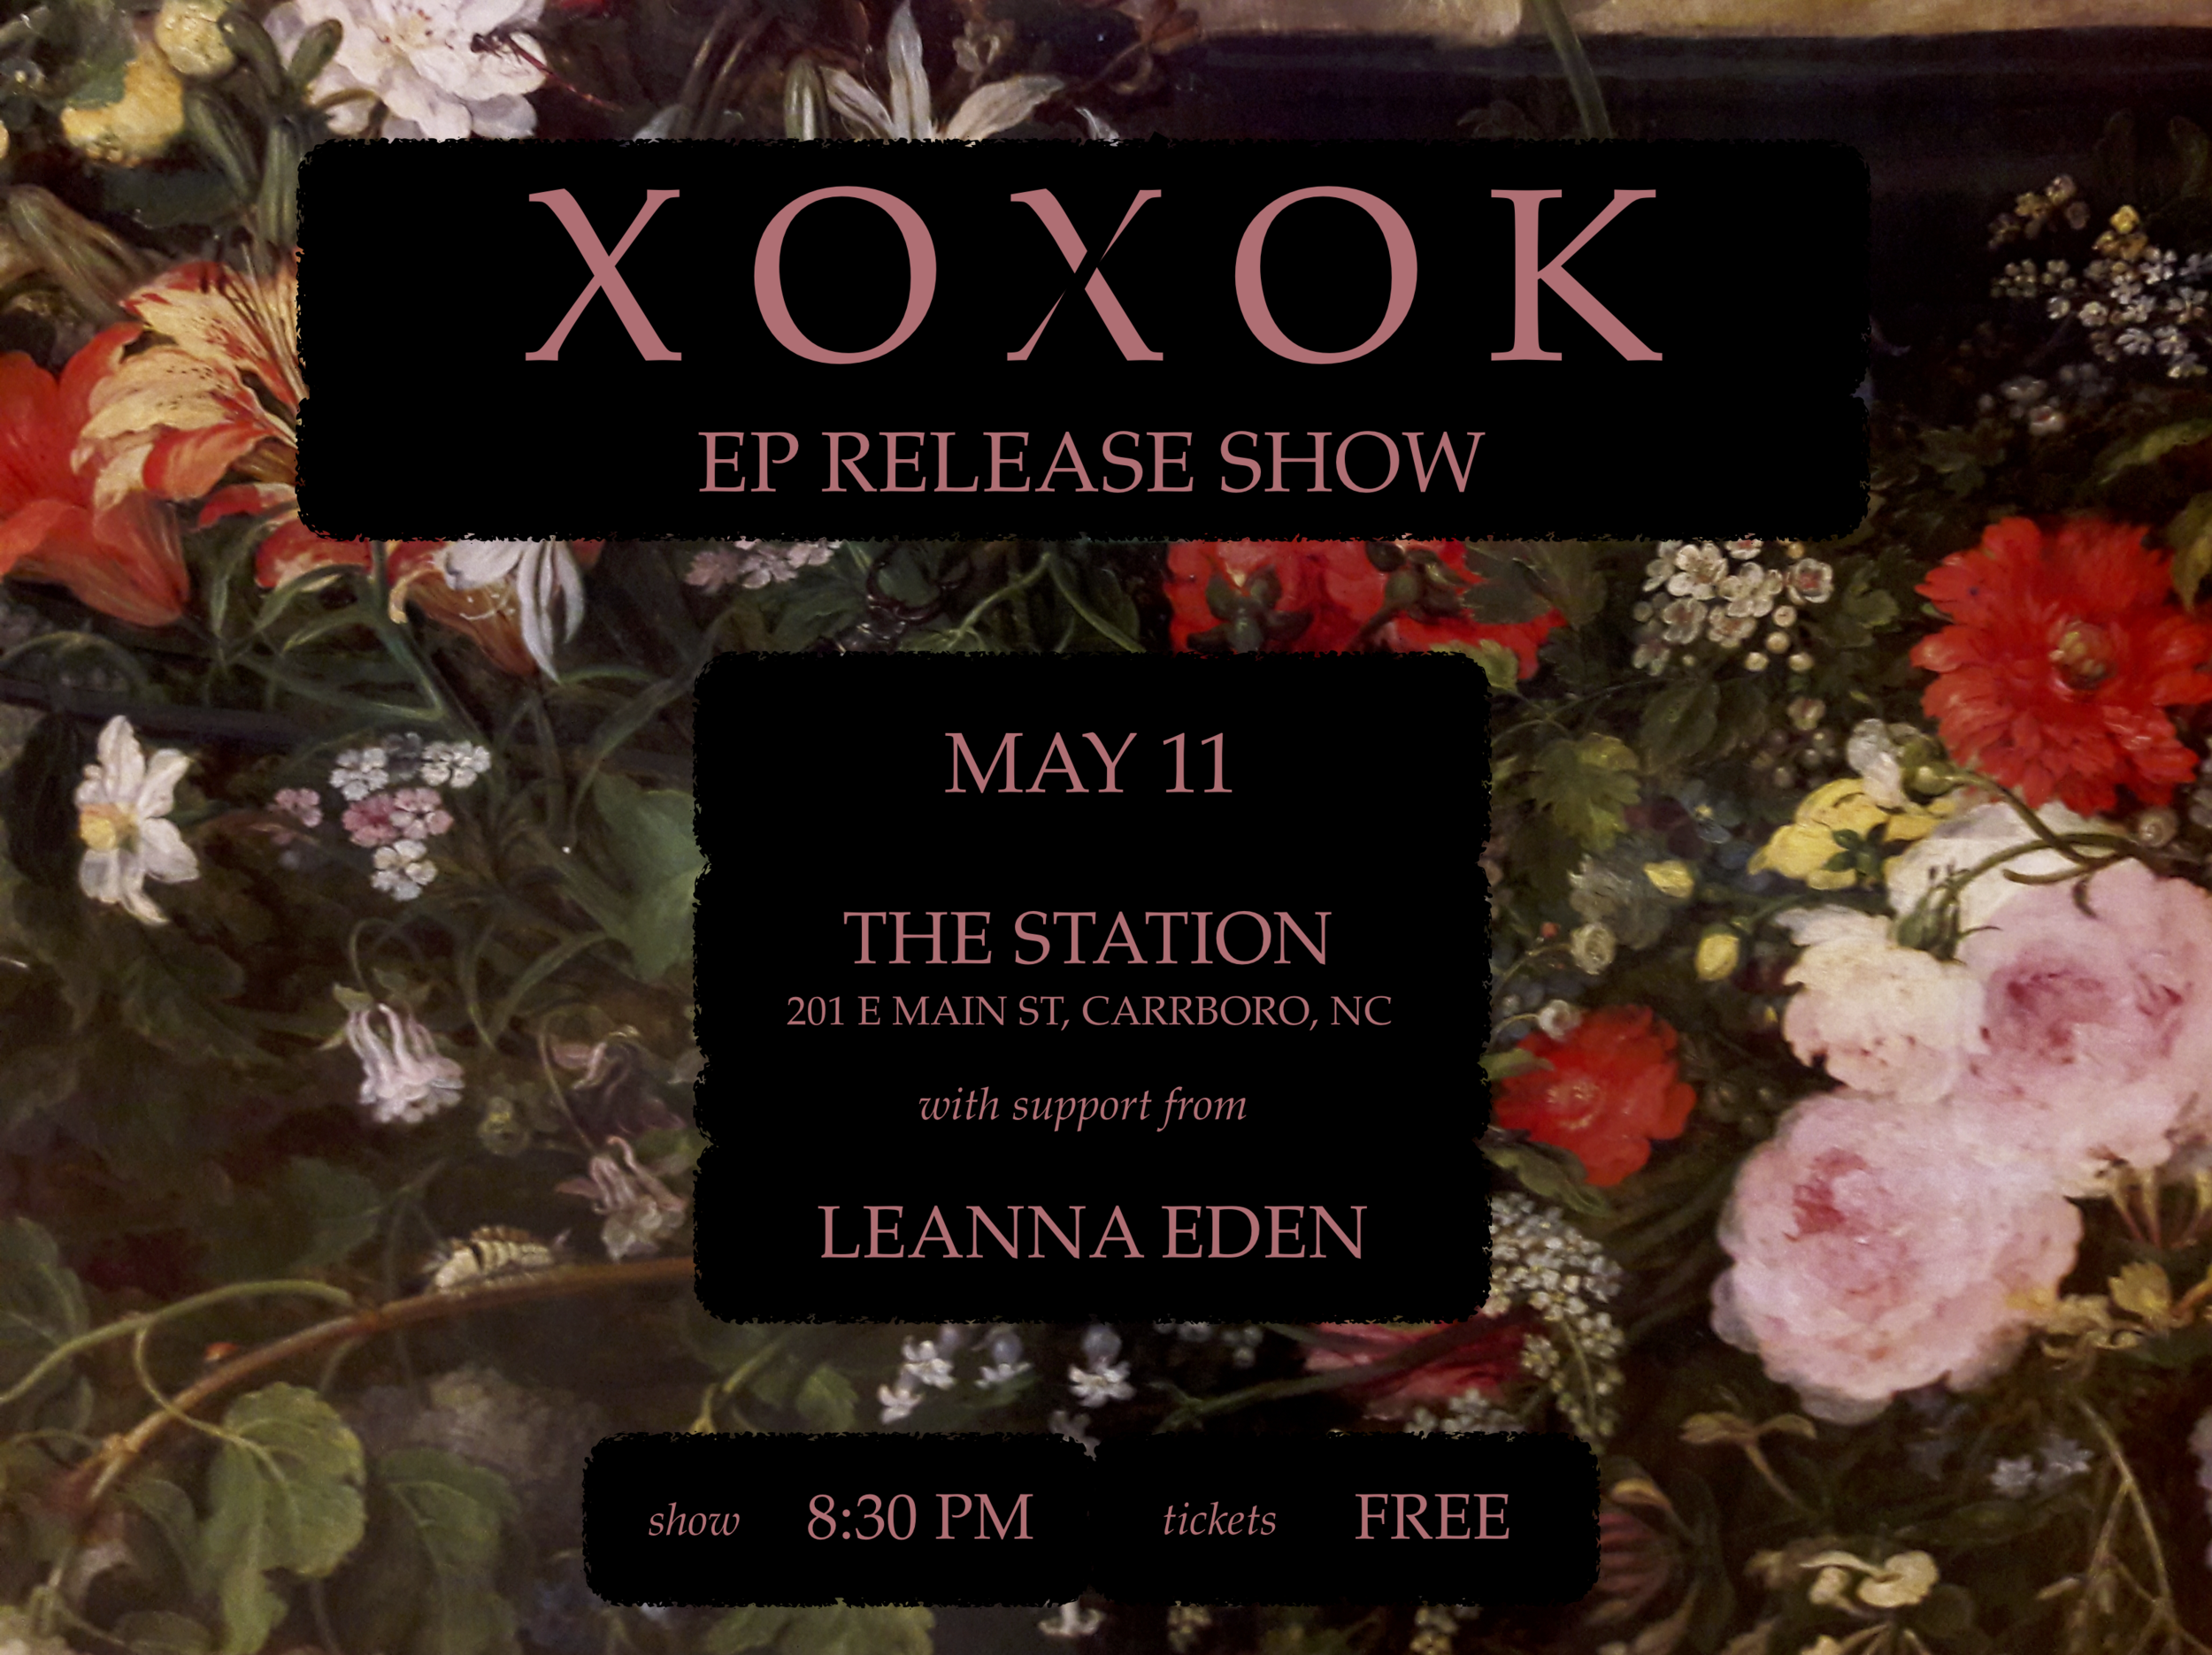 XOXOK flyer for release show 4.3.19.png